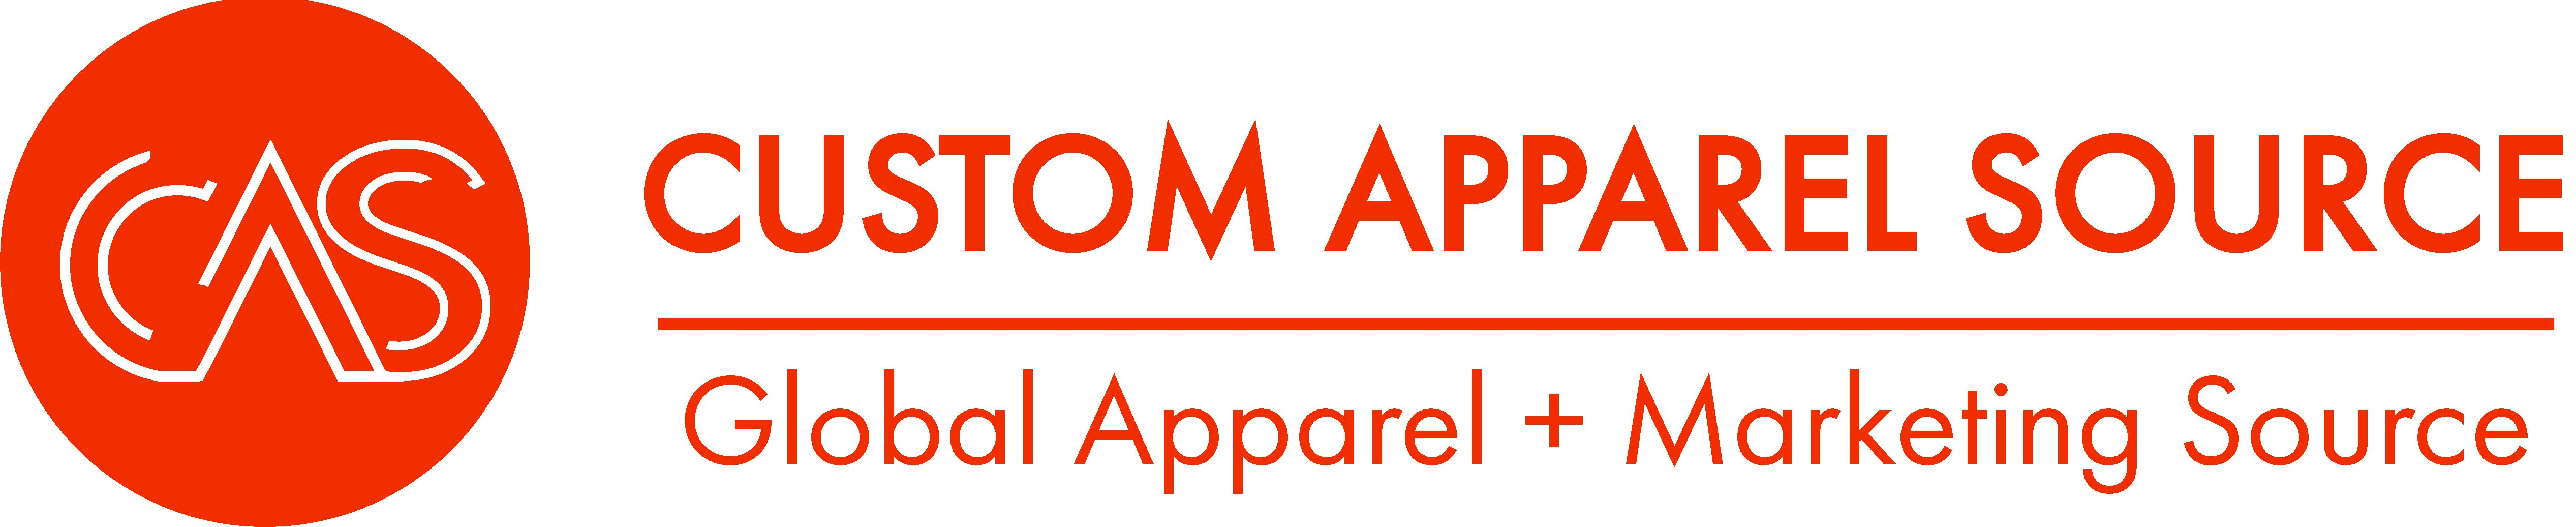 Custom Apparel Source - Global Custom Apparel and Marketing Resource